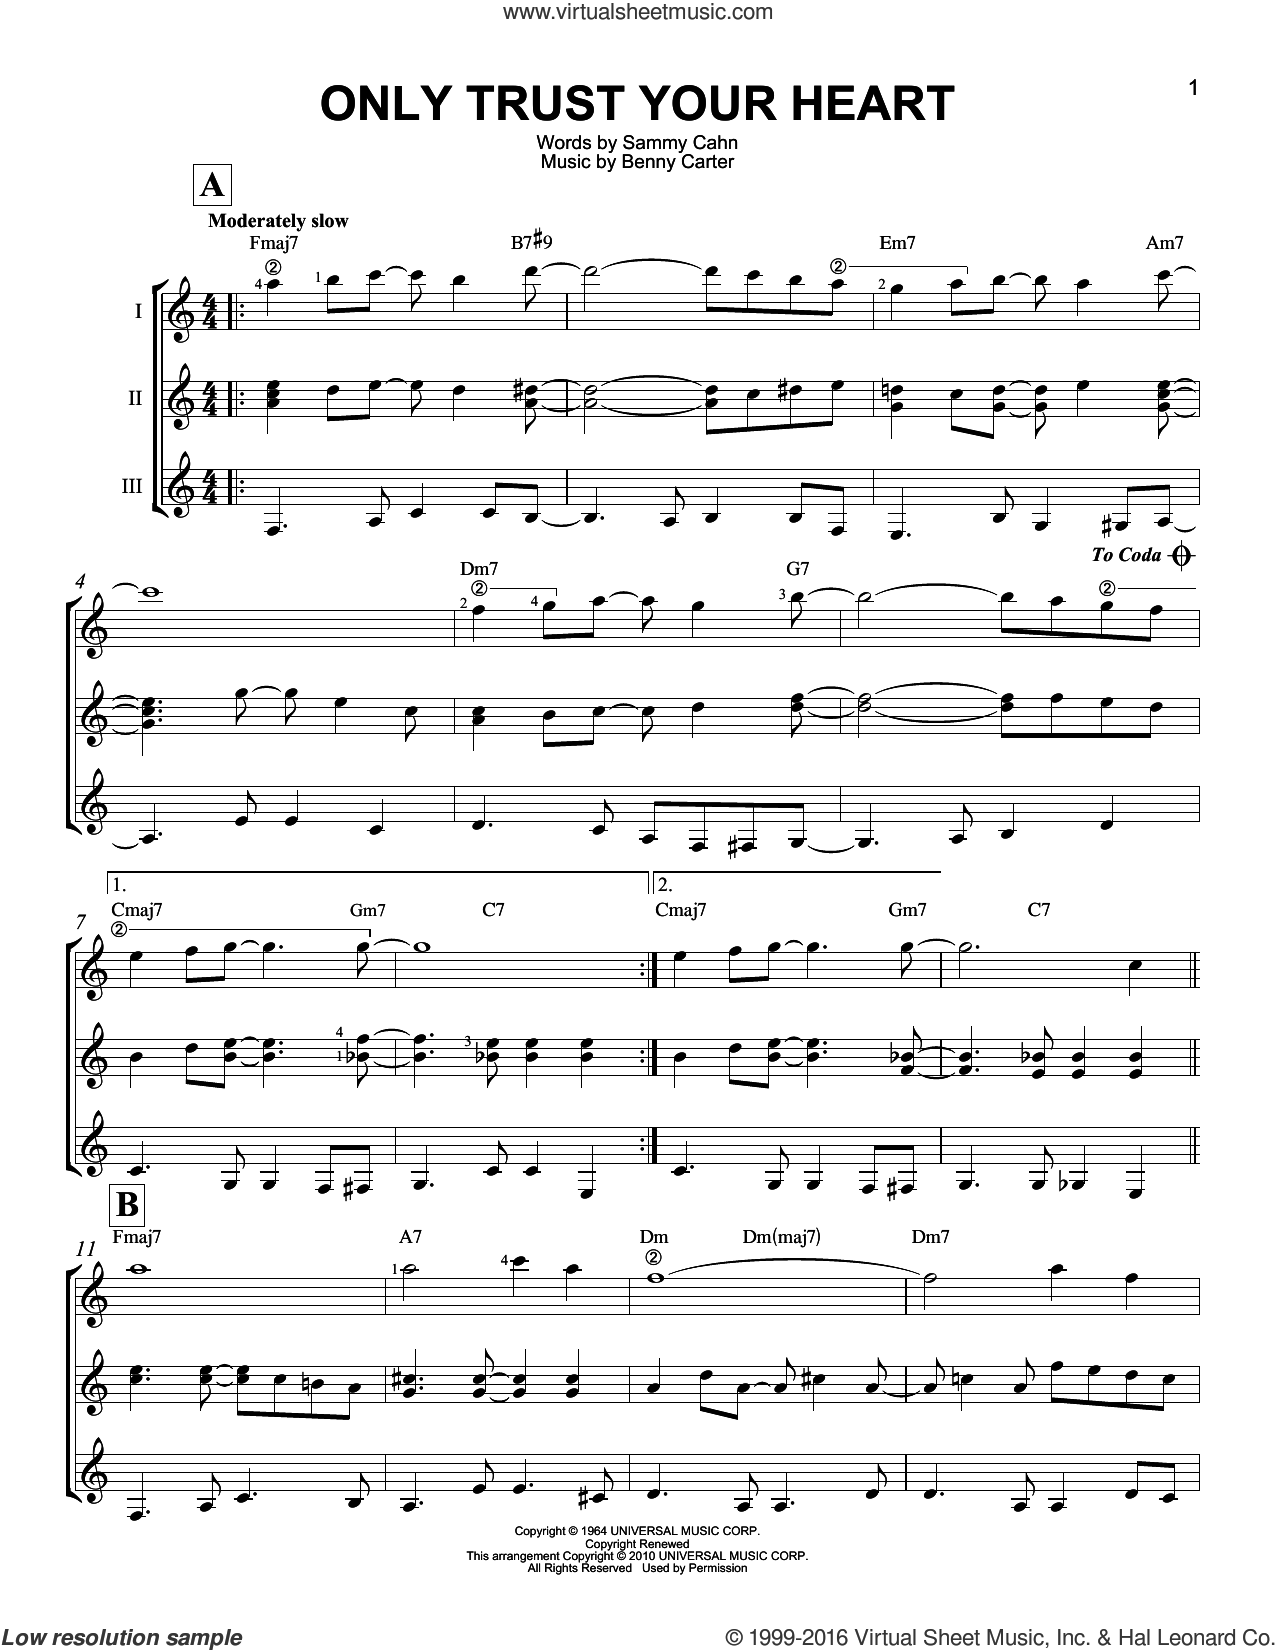 Only Trust Your Heart sheet music for guitar ensemble by Sammy Cahn and Benny Carter, intermediate skill level